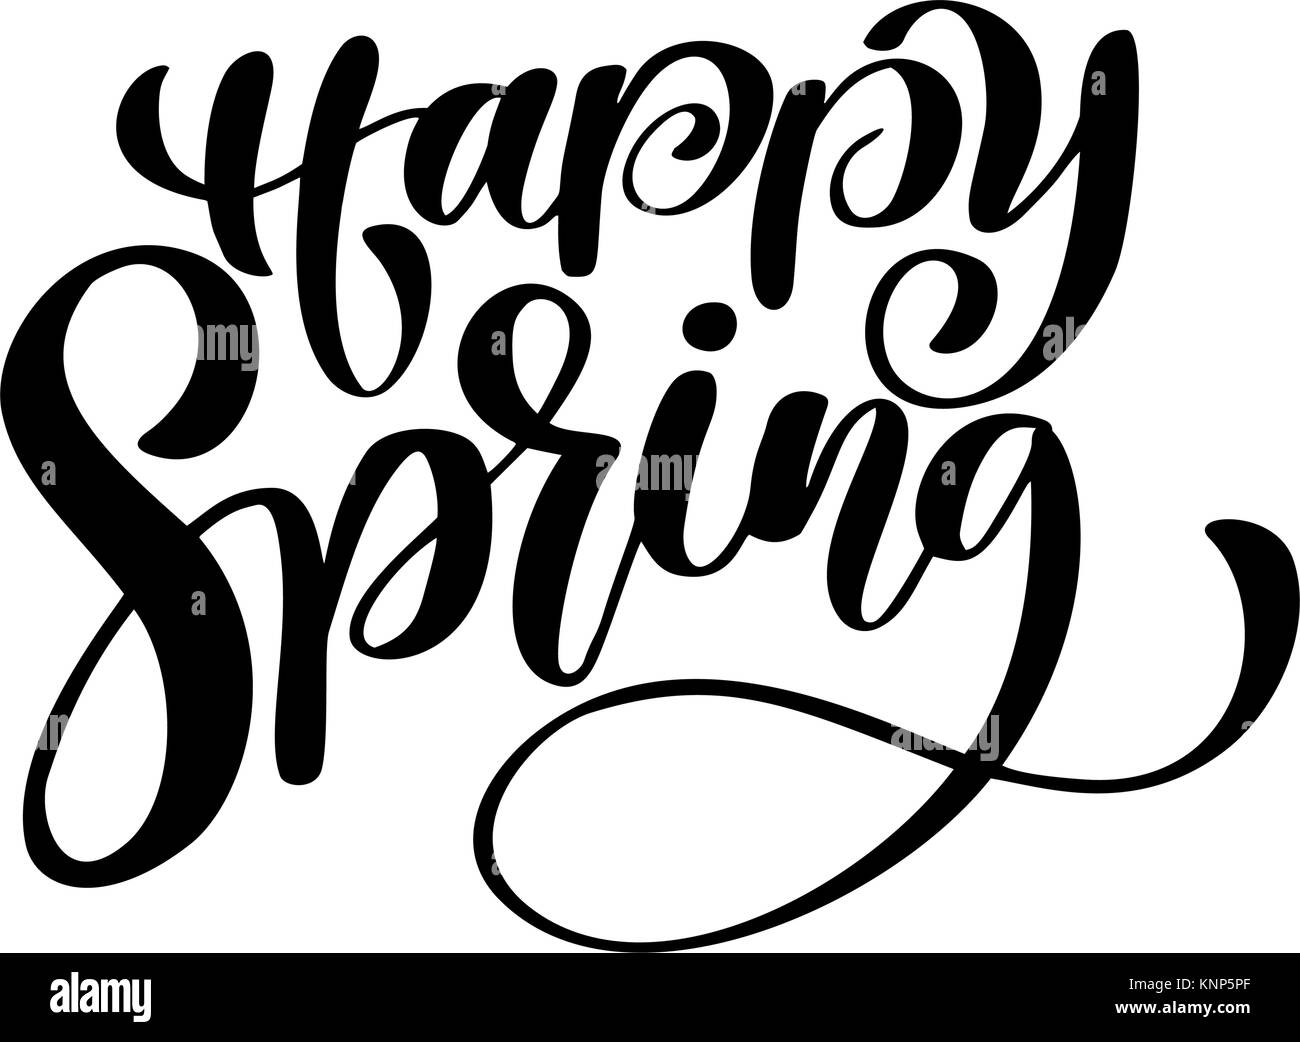 Hand Drawn Calligraphy And Brush Pen Lettering Design For Holiday Greeting Card Invitation Of Seasonal Spring Fun Ink Typography